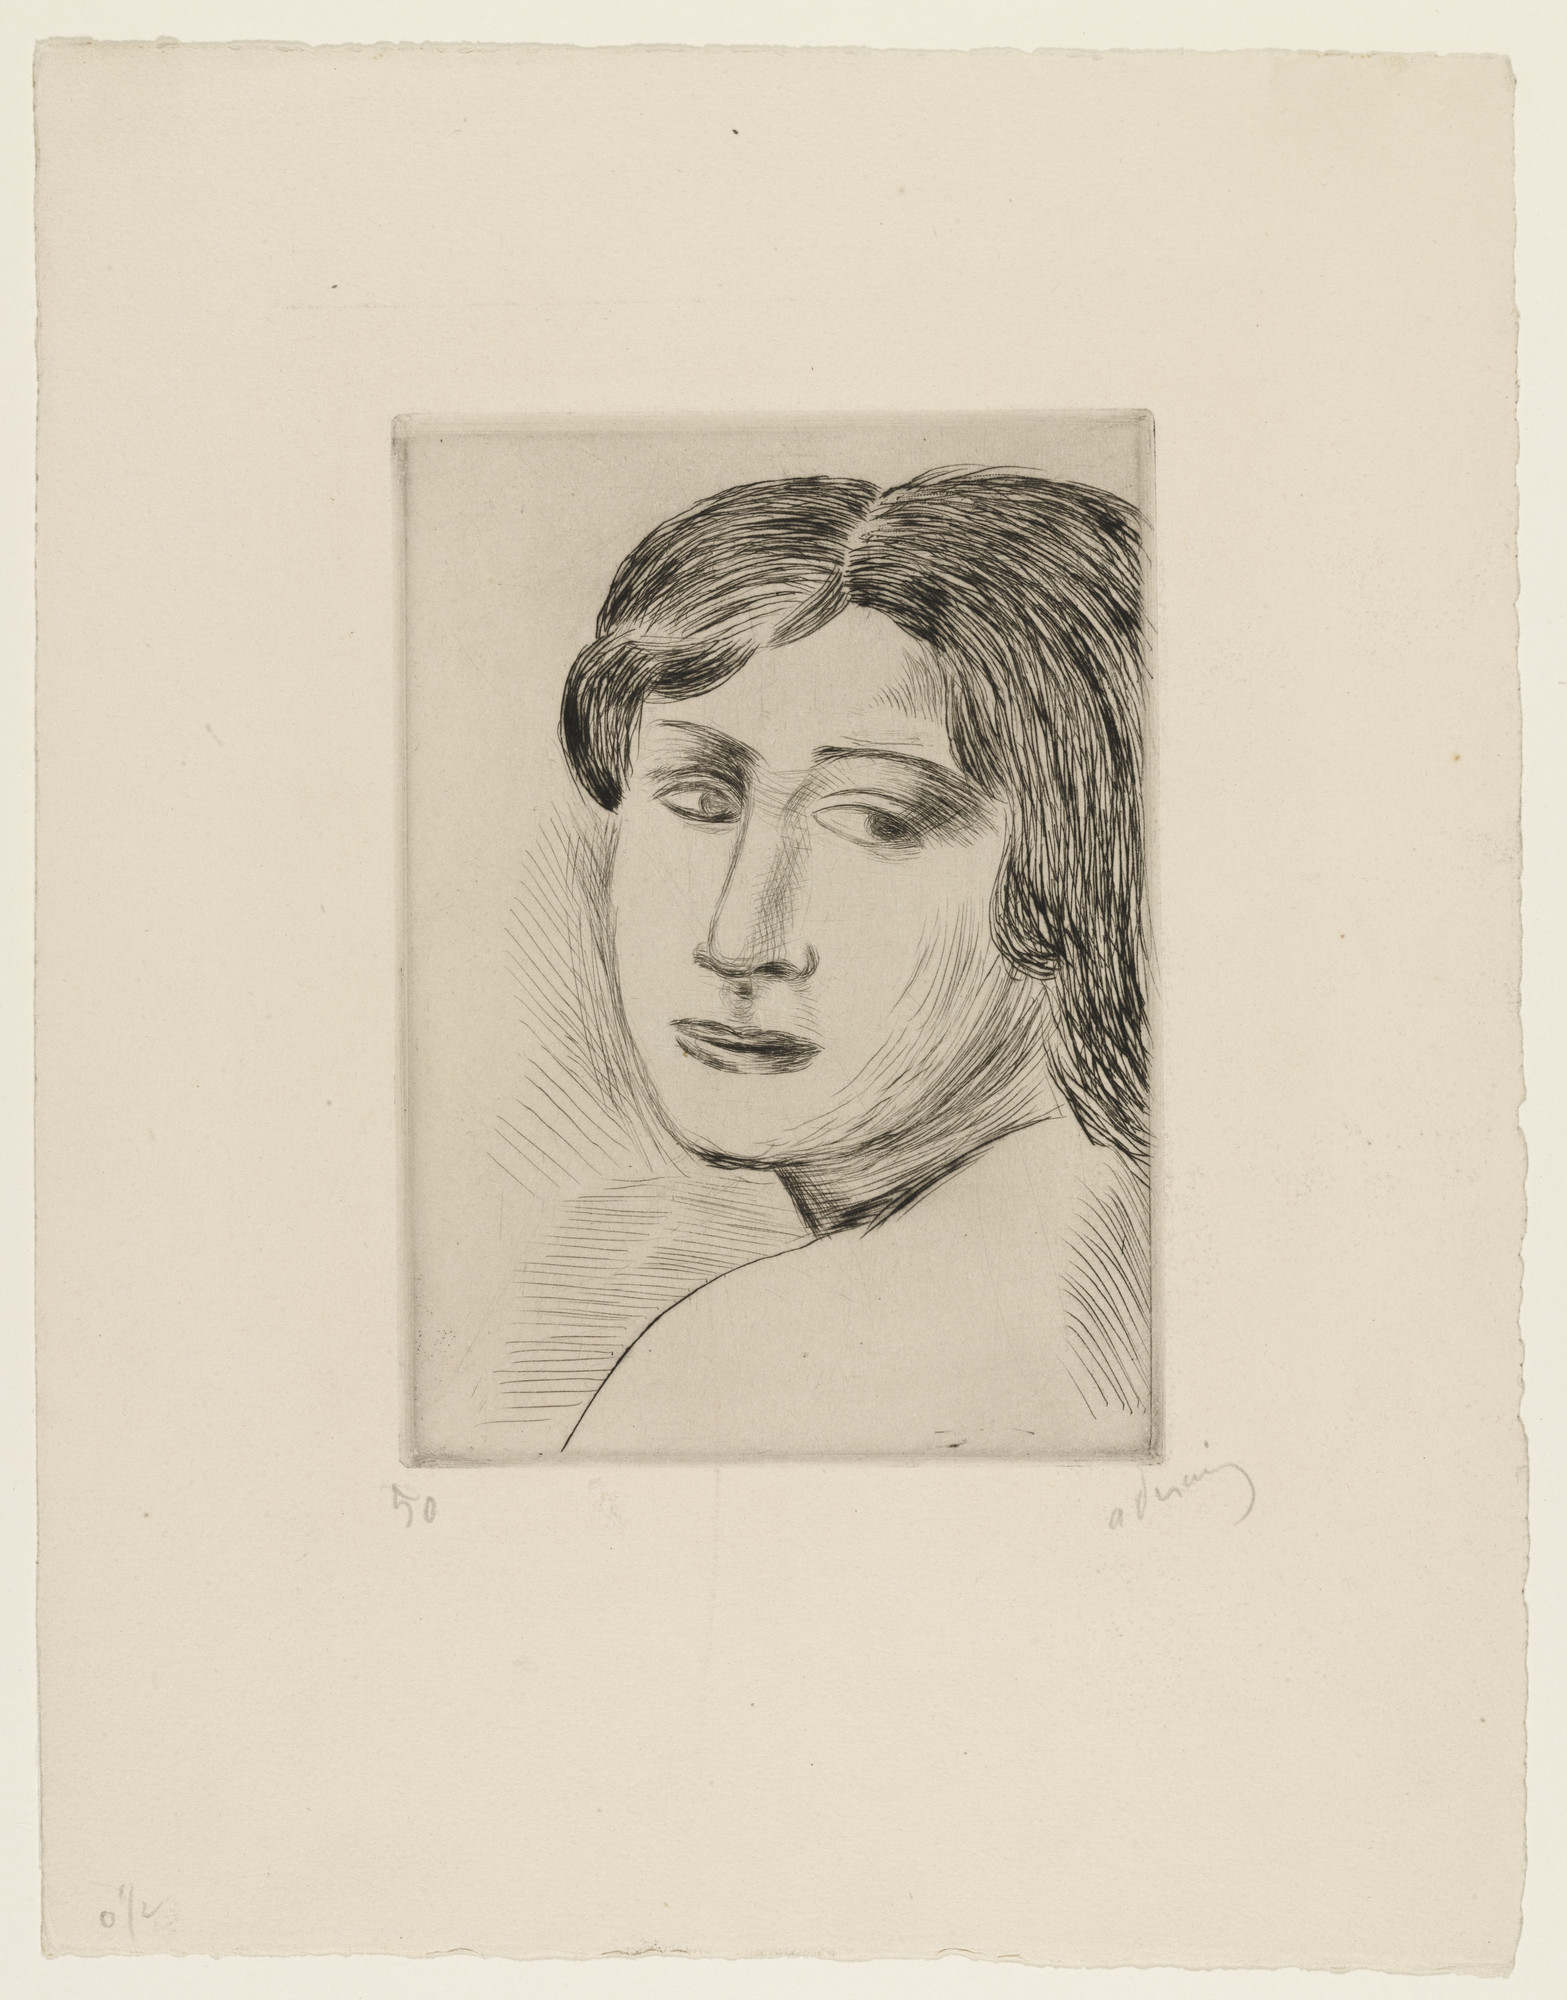 André Derain. Woman's Head. (1920)